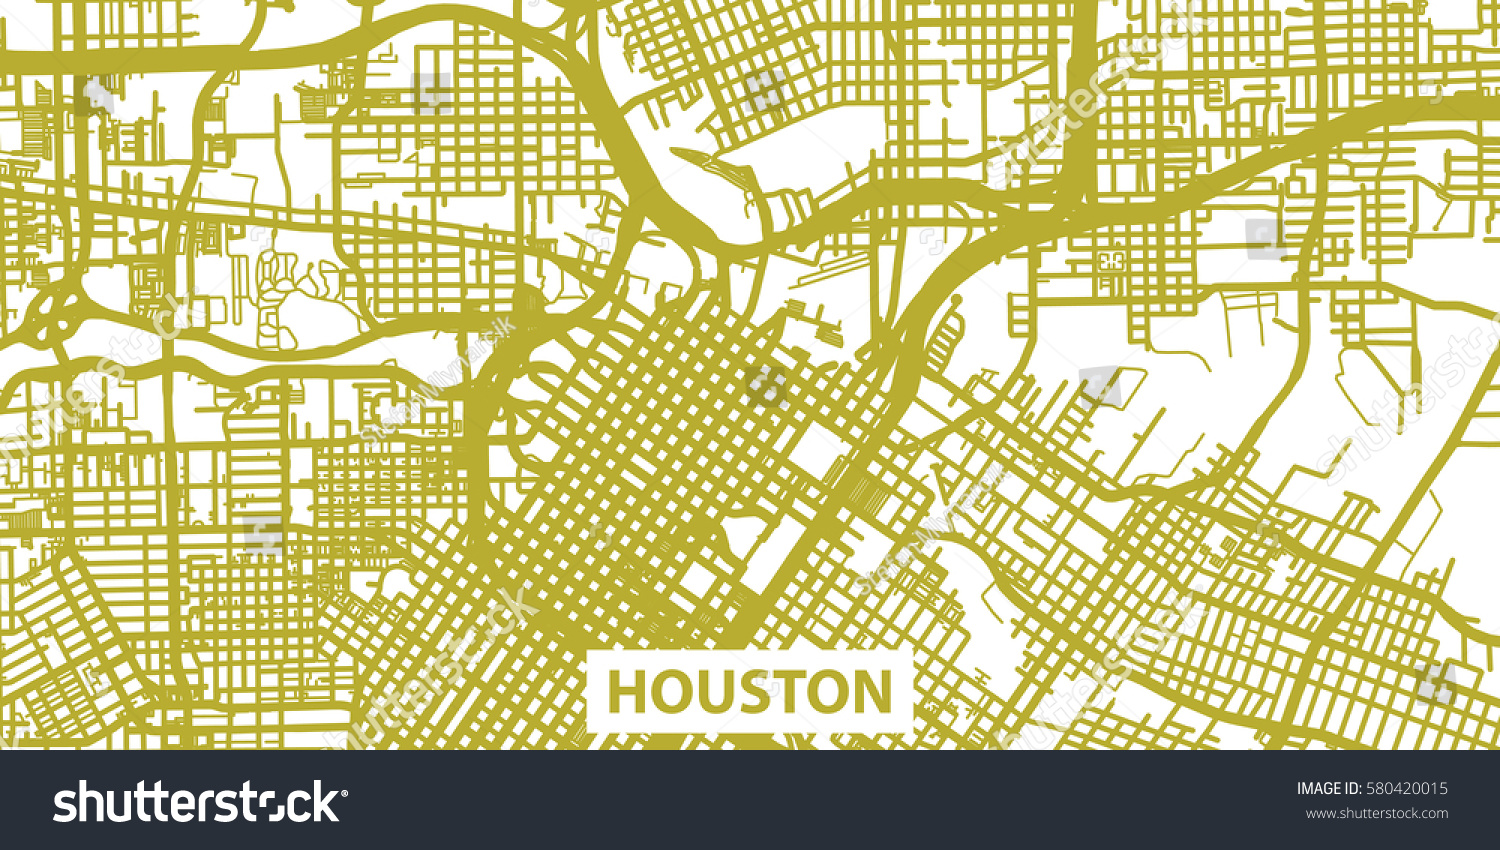 Detailed Vector Map Houston Gold Title Stock Vector - Houston map usa